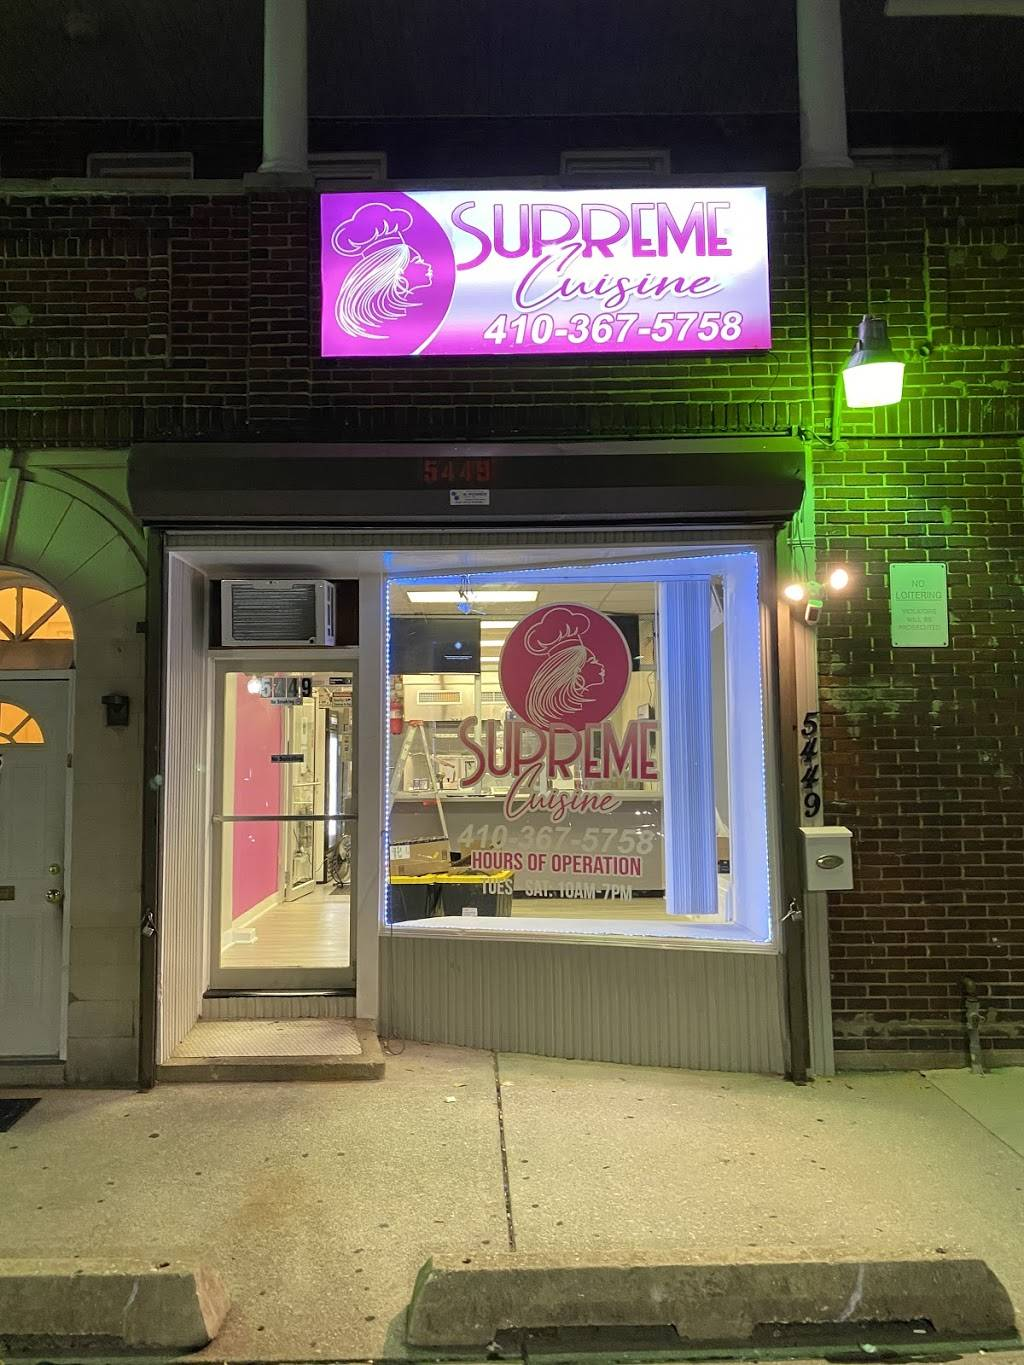 Supreme Cuisine | restaurant | 5449 Park Heights Ave, Baltimore, MD 21215, USA | 4103675758 OR +1 410-367-5758